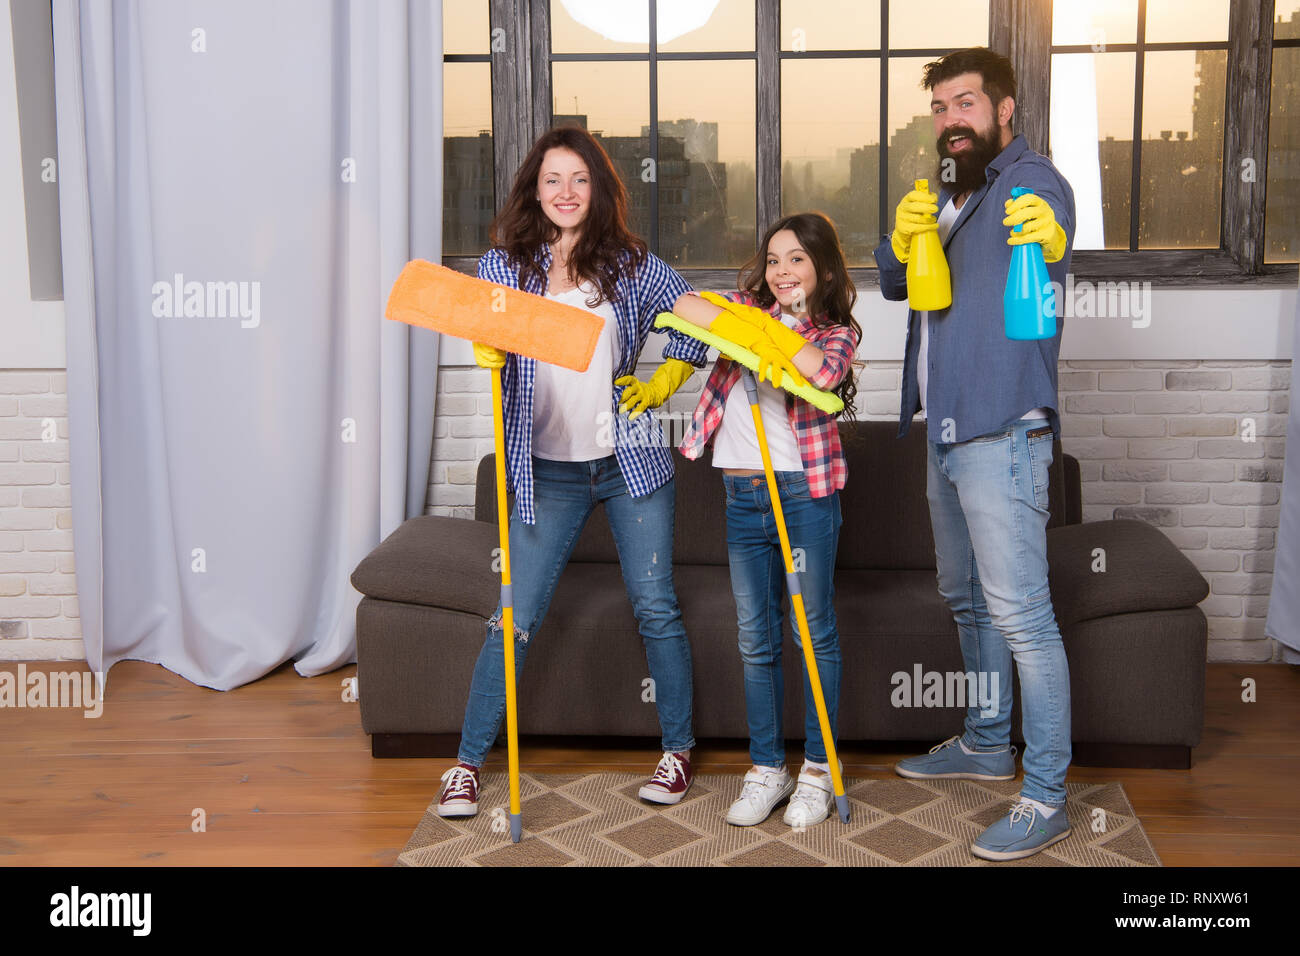 Cleaning day. Family mom dad and daughter with cleaning supplies at living room. We love cleanliness and tidiness. Cleaning together easier and more fun. Family care about cleanliness. Start cleaning. - Stock Image